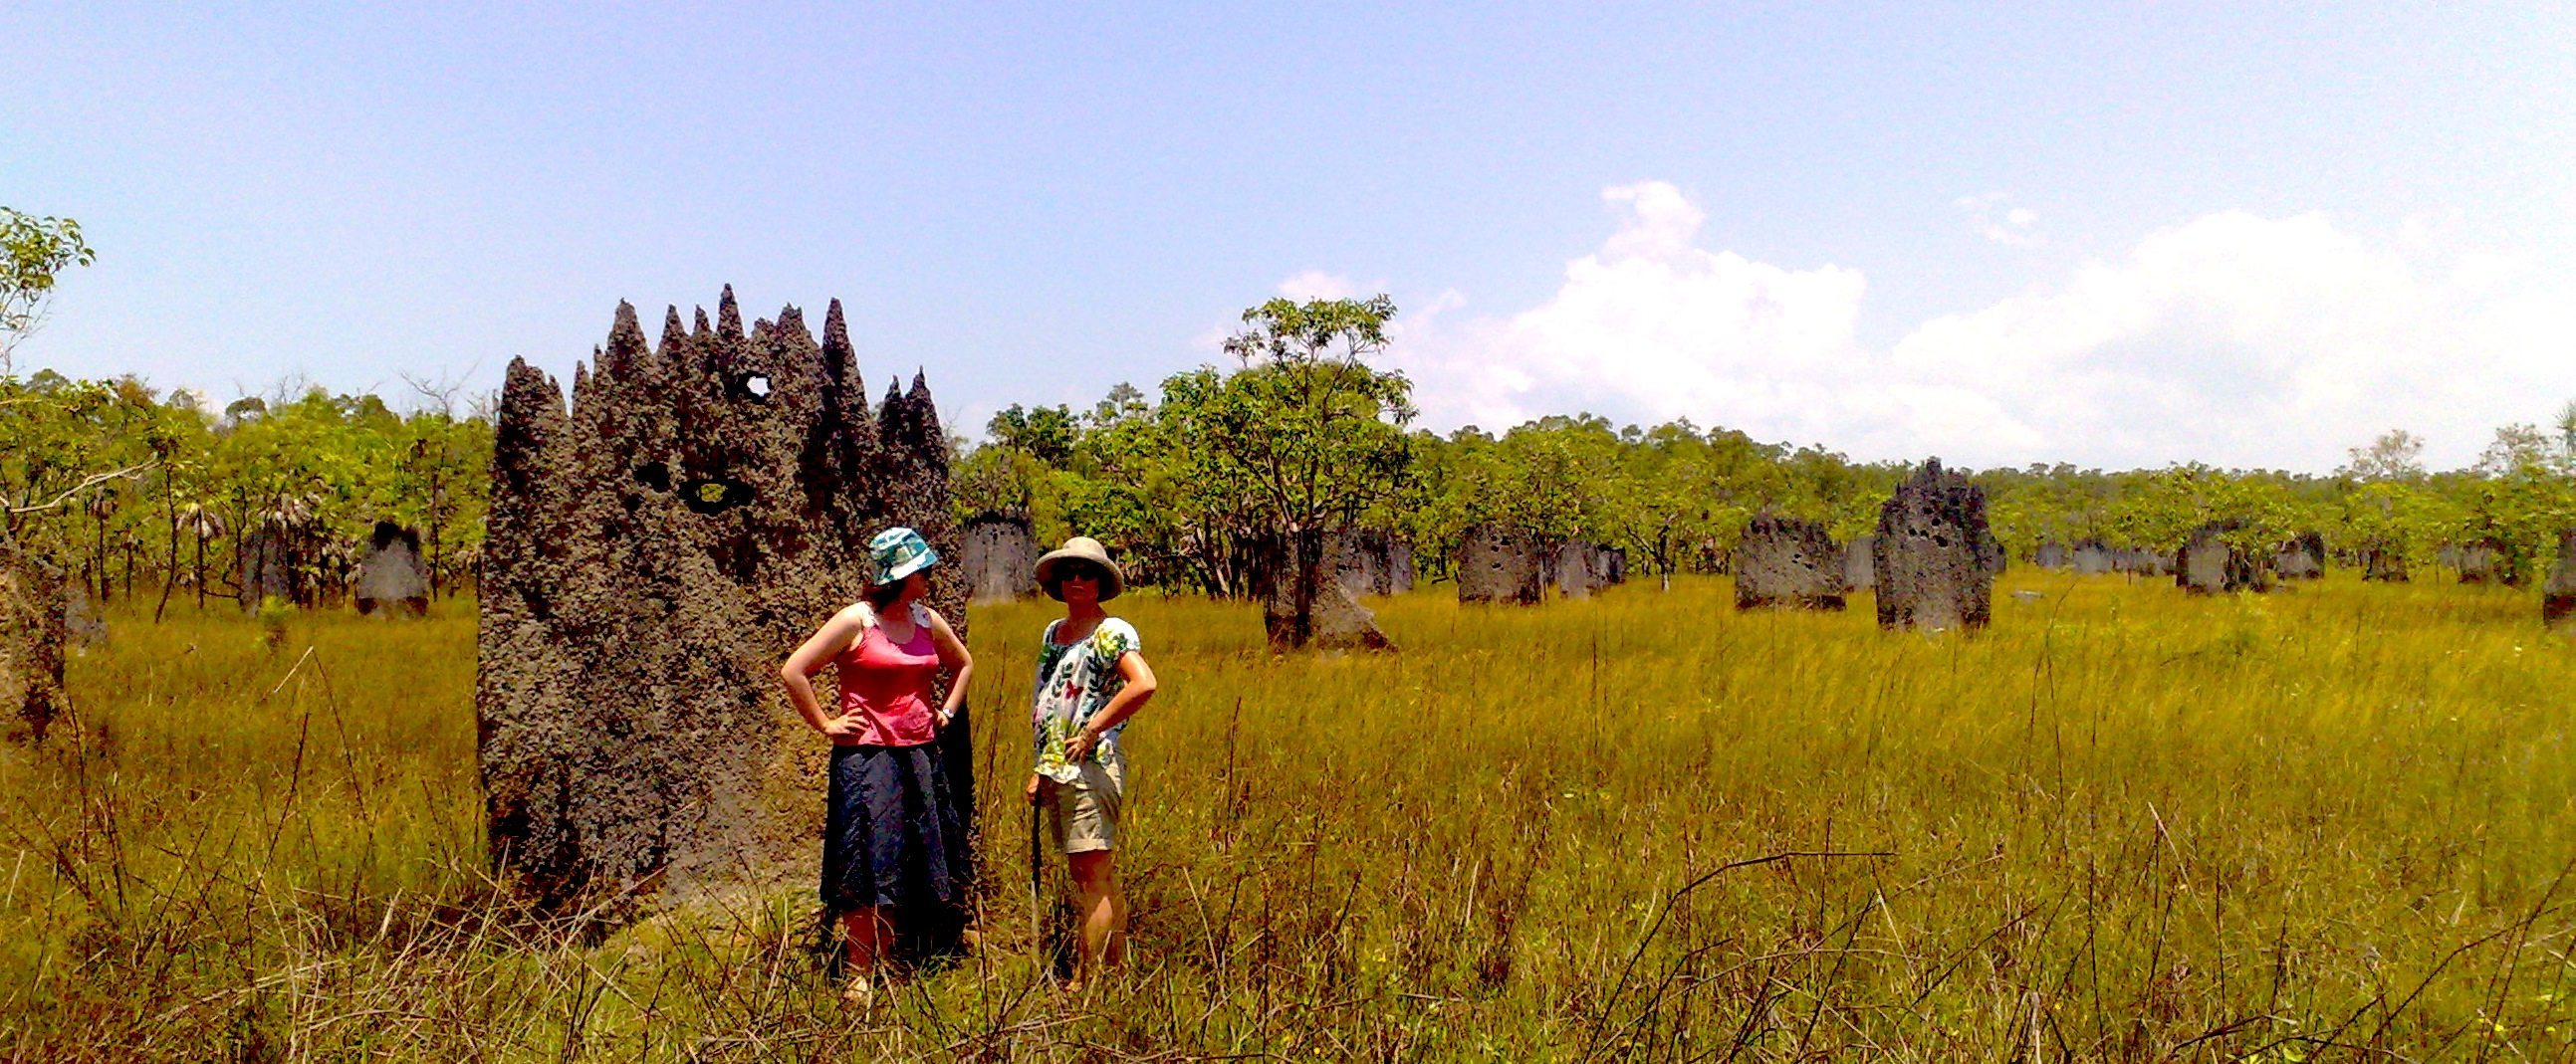 The Termite Mounds near Mandorah: under threat from Fracking